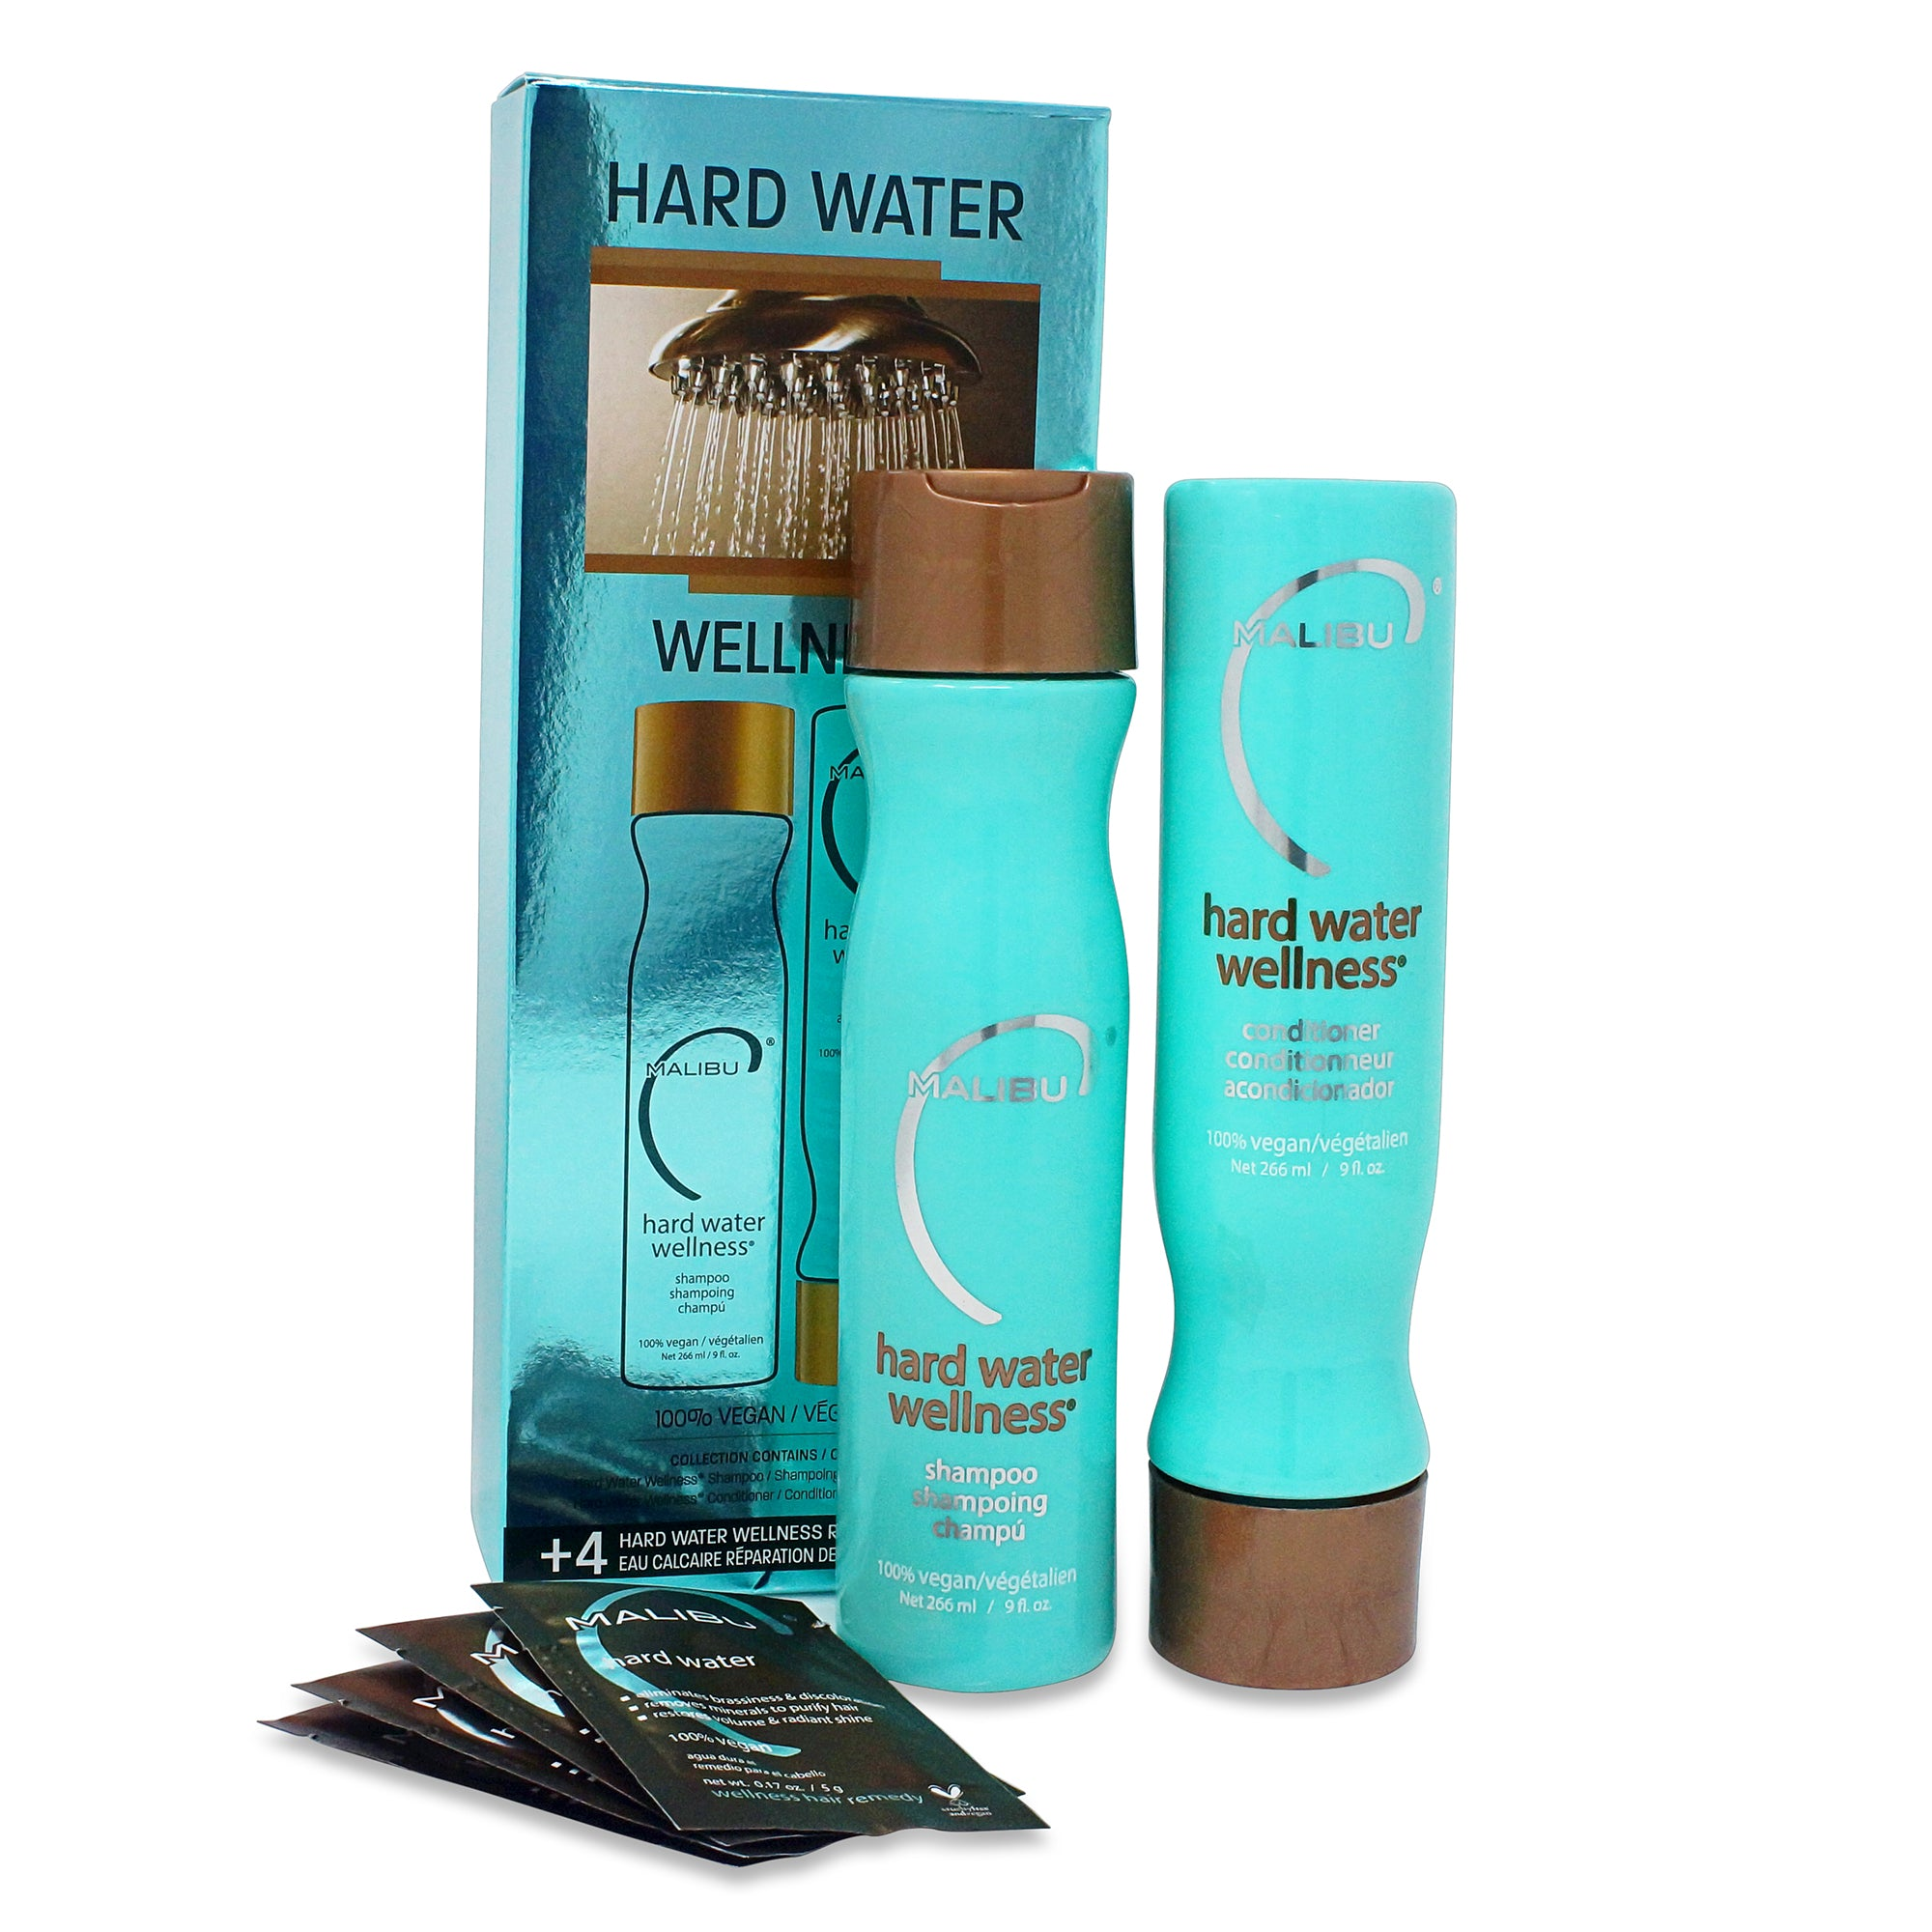 MALIBU ~ HARD WATER WELLNESS KIT* 2018 new product*